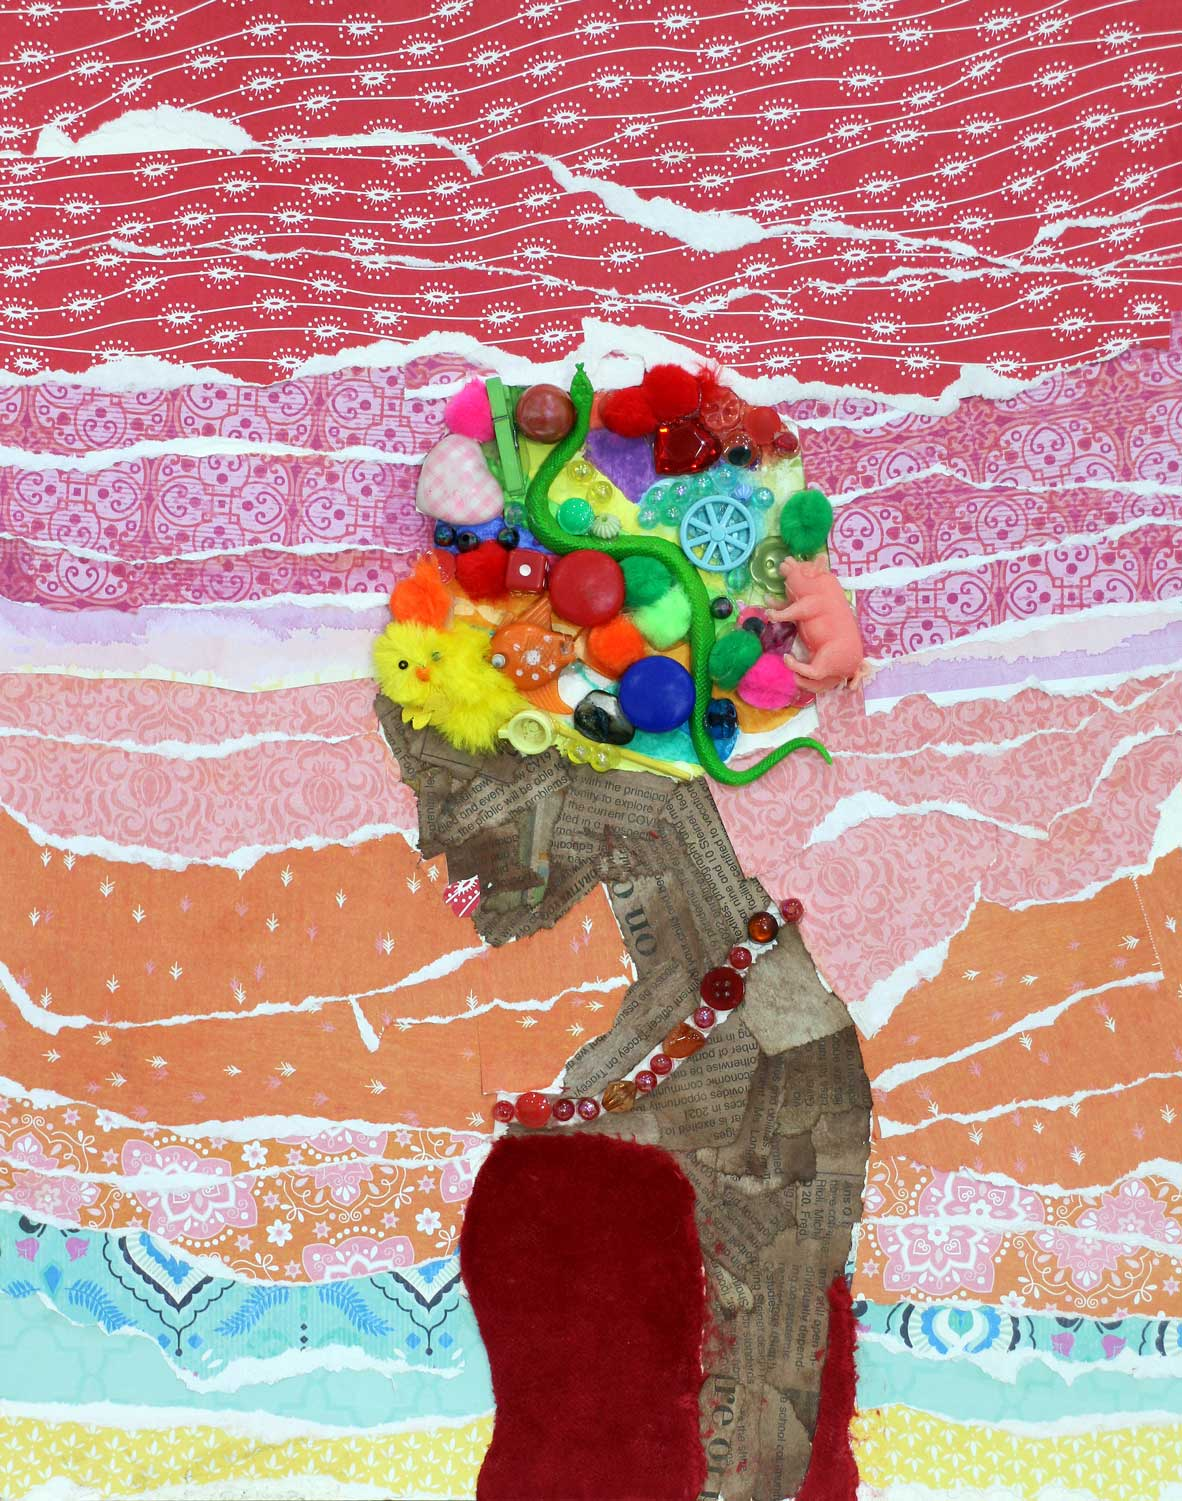 Student artwork of a female wearing a headdress made from found objects